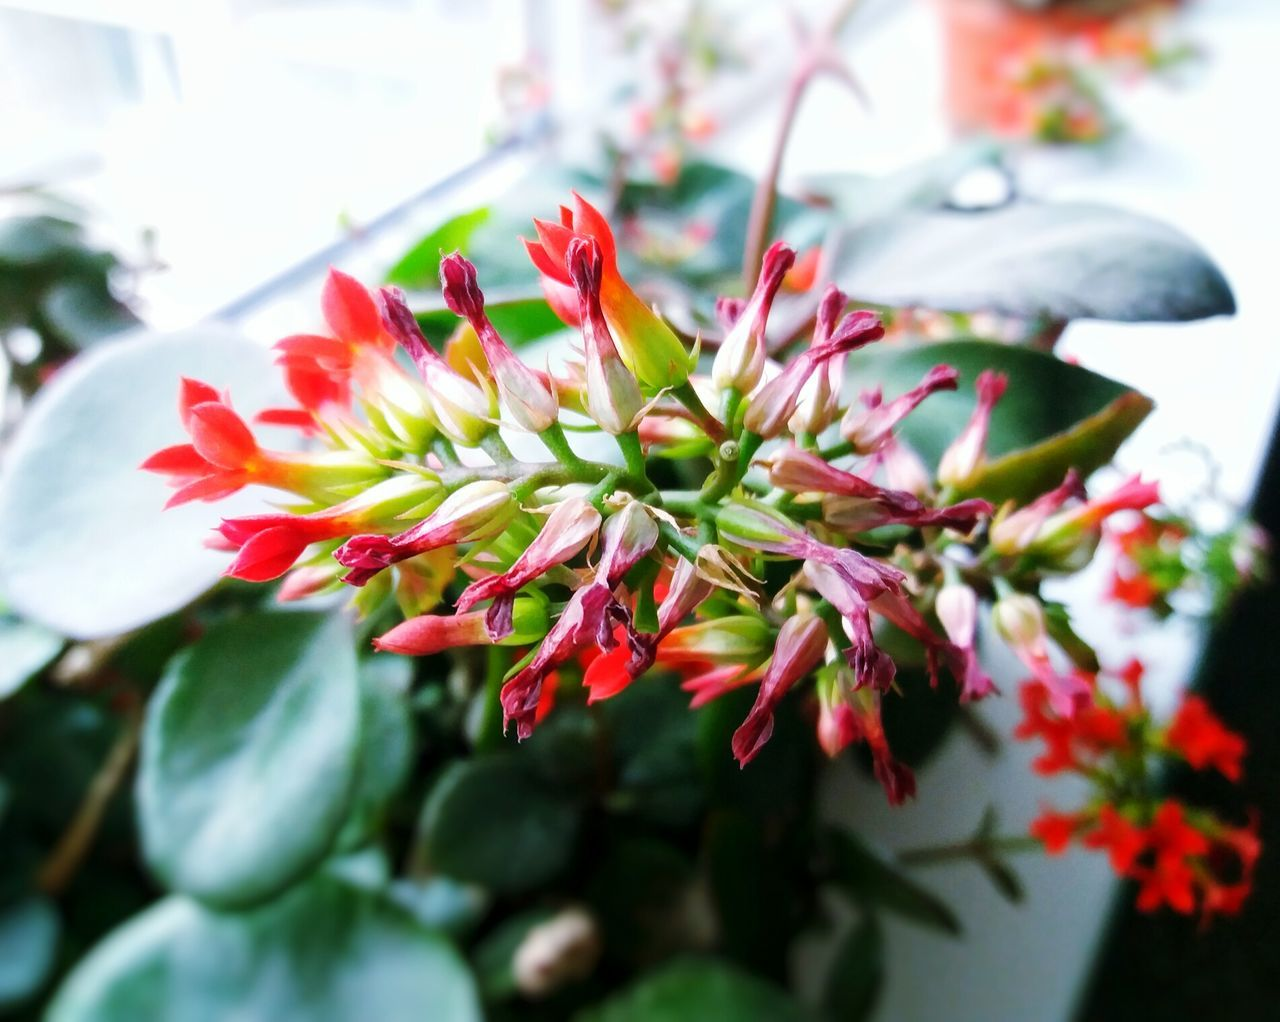 Flower Plant Leaf Nature Herbal Medicine Flower Head Indoors  Growth Beauty In Nature Nature